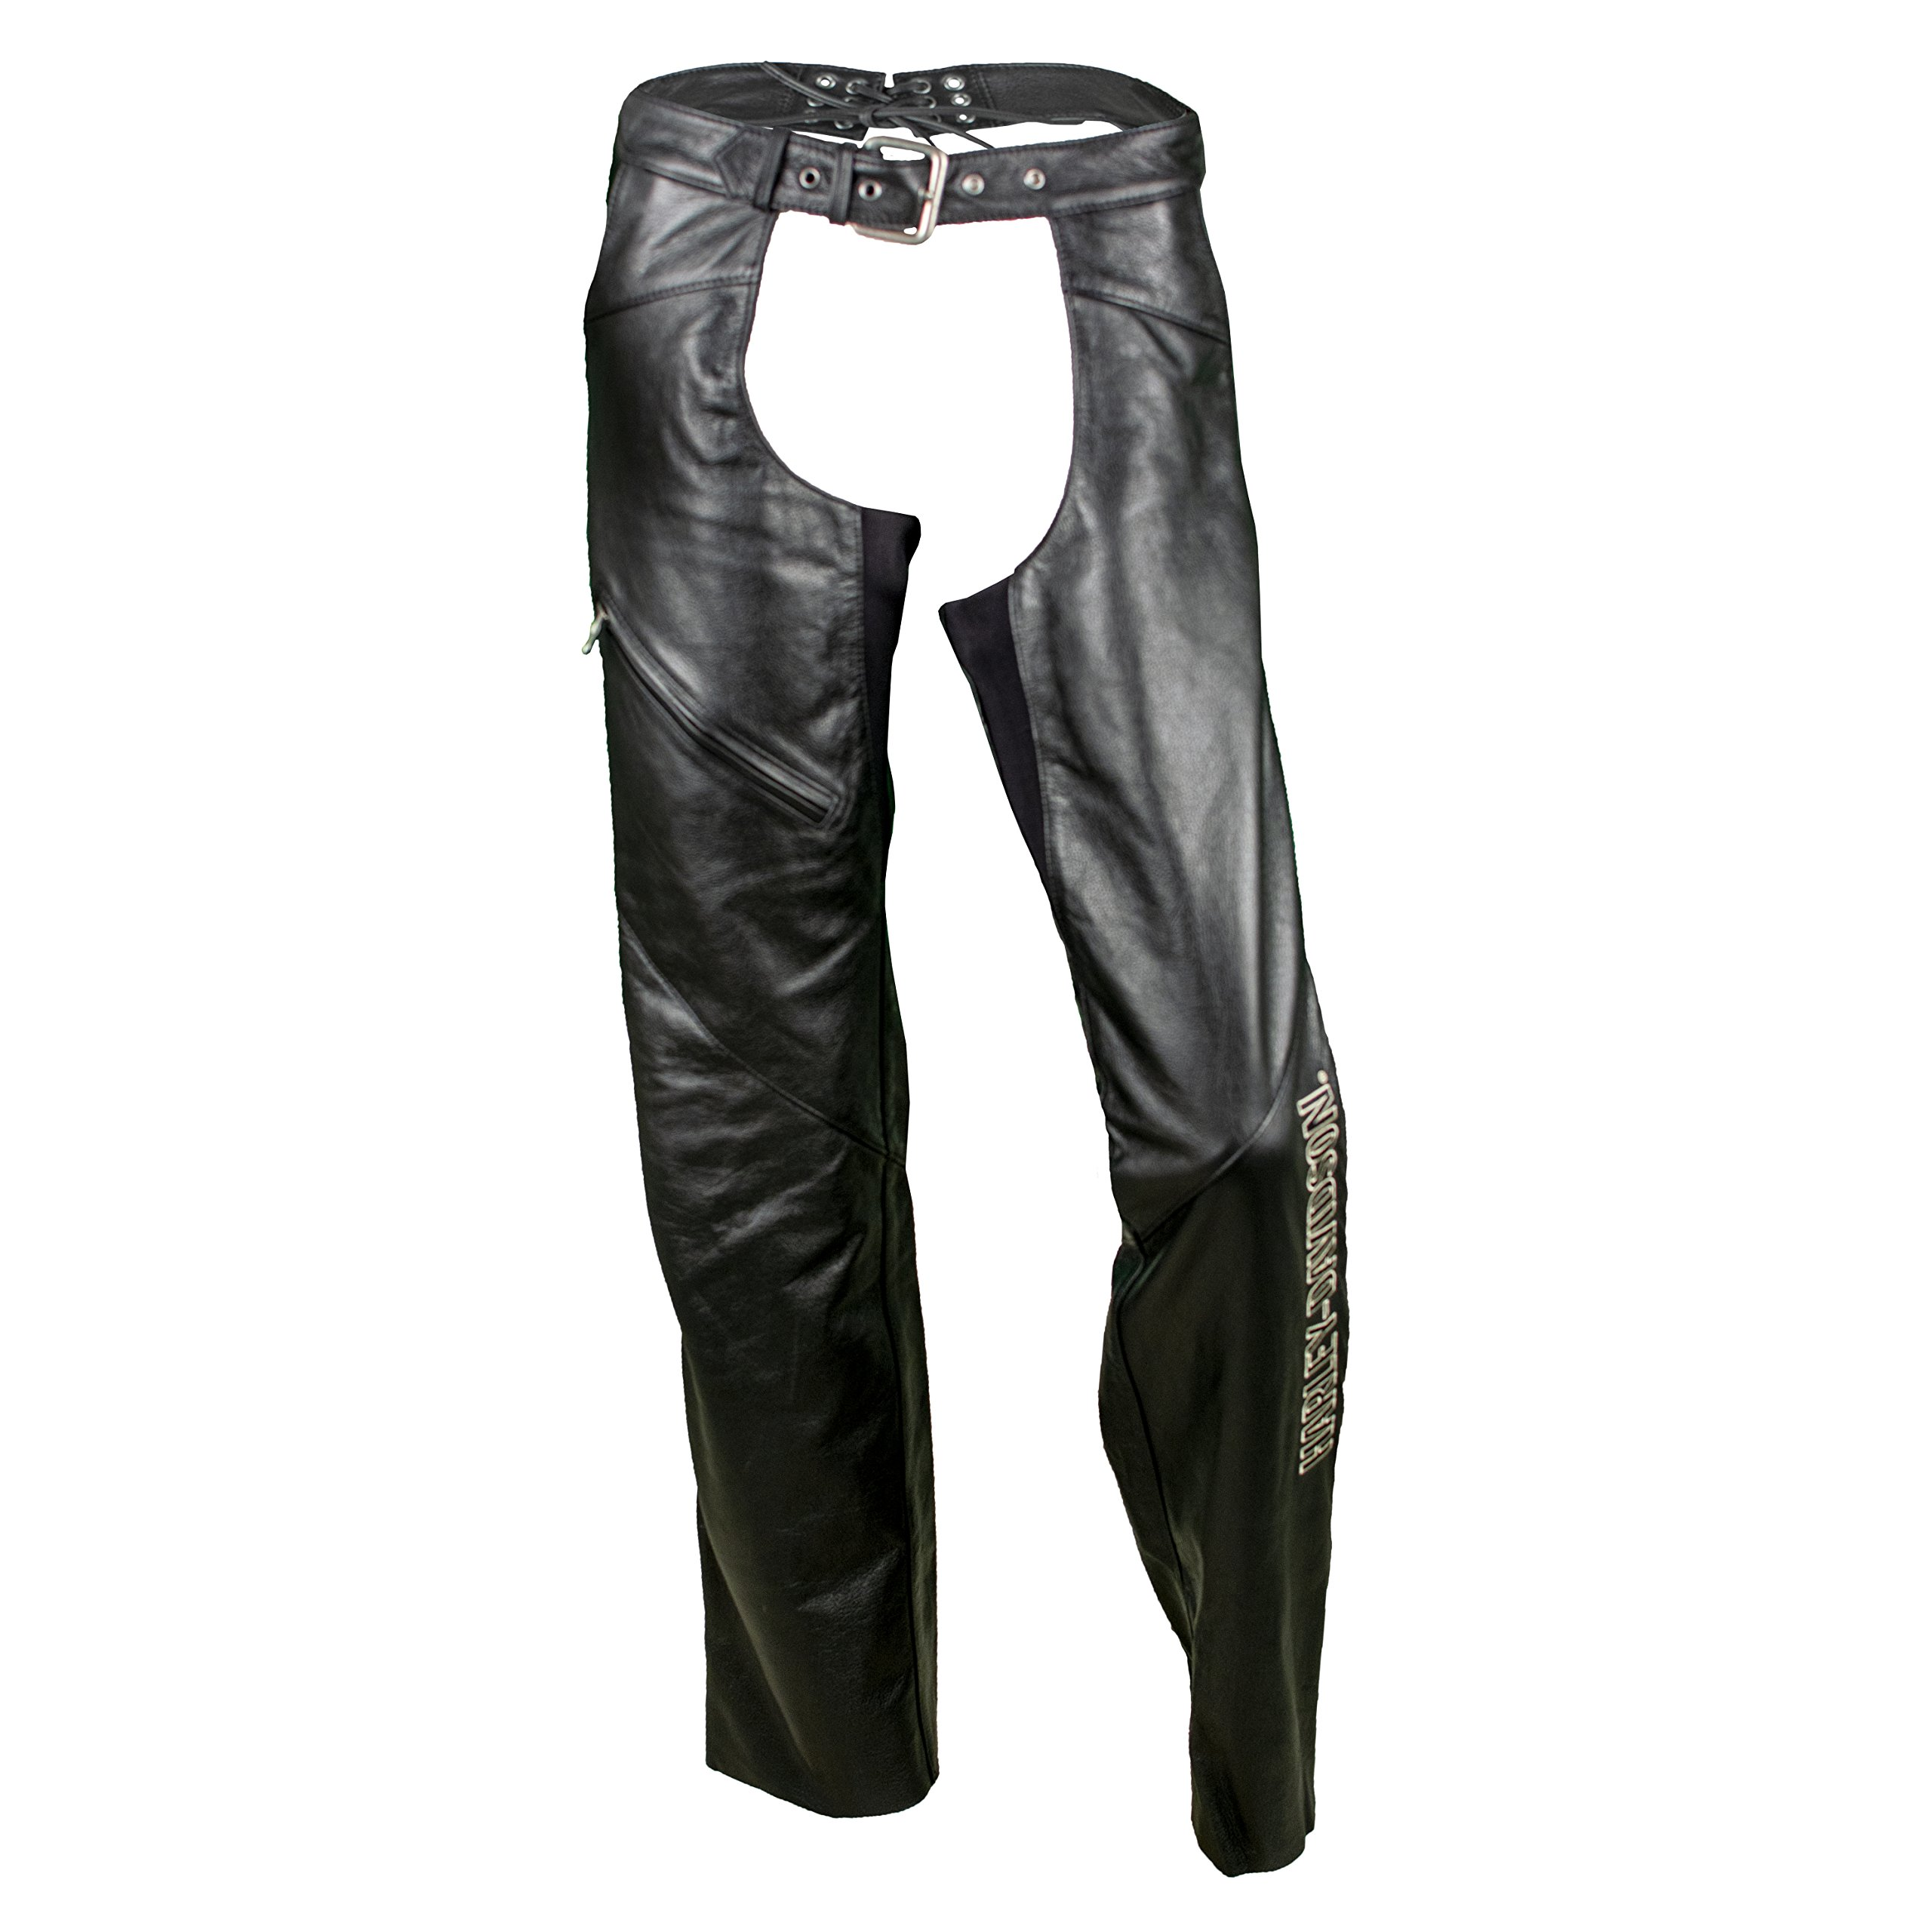 Harley-Davidson Women's Deluxe Leather Motorcycle Chaps 98097-06VW (Small) by Harley-Davidson (Image #1)